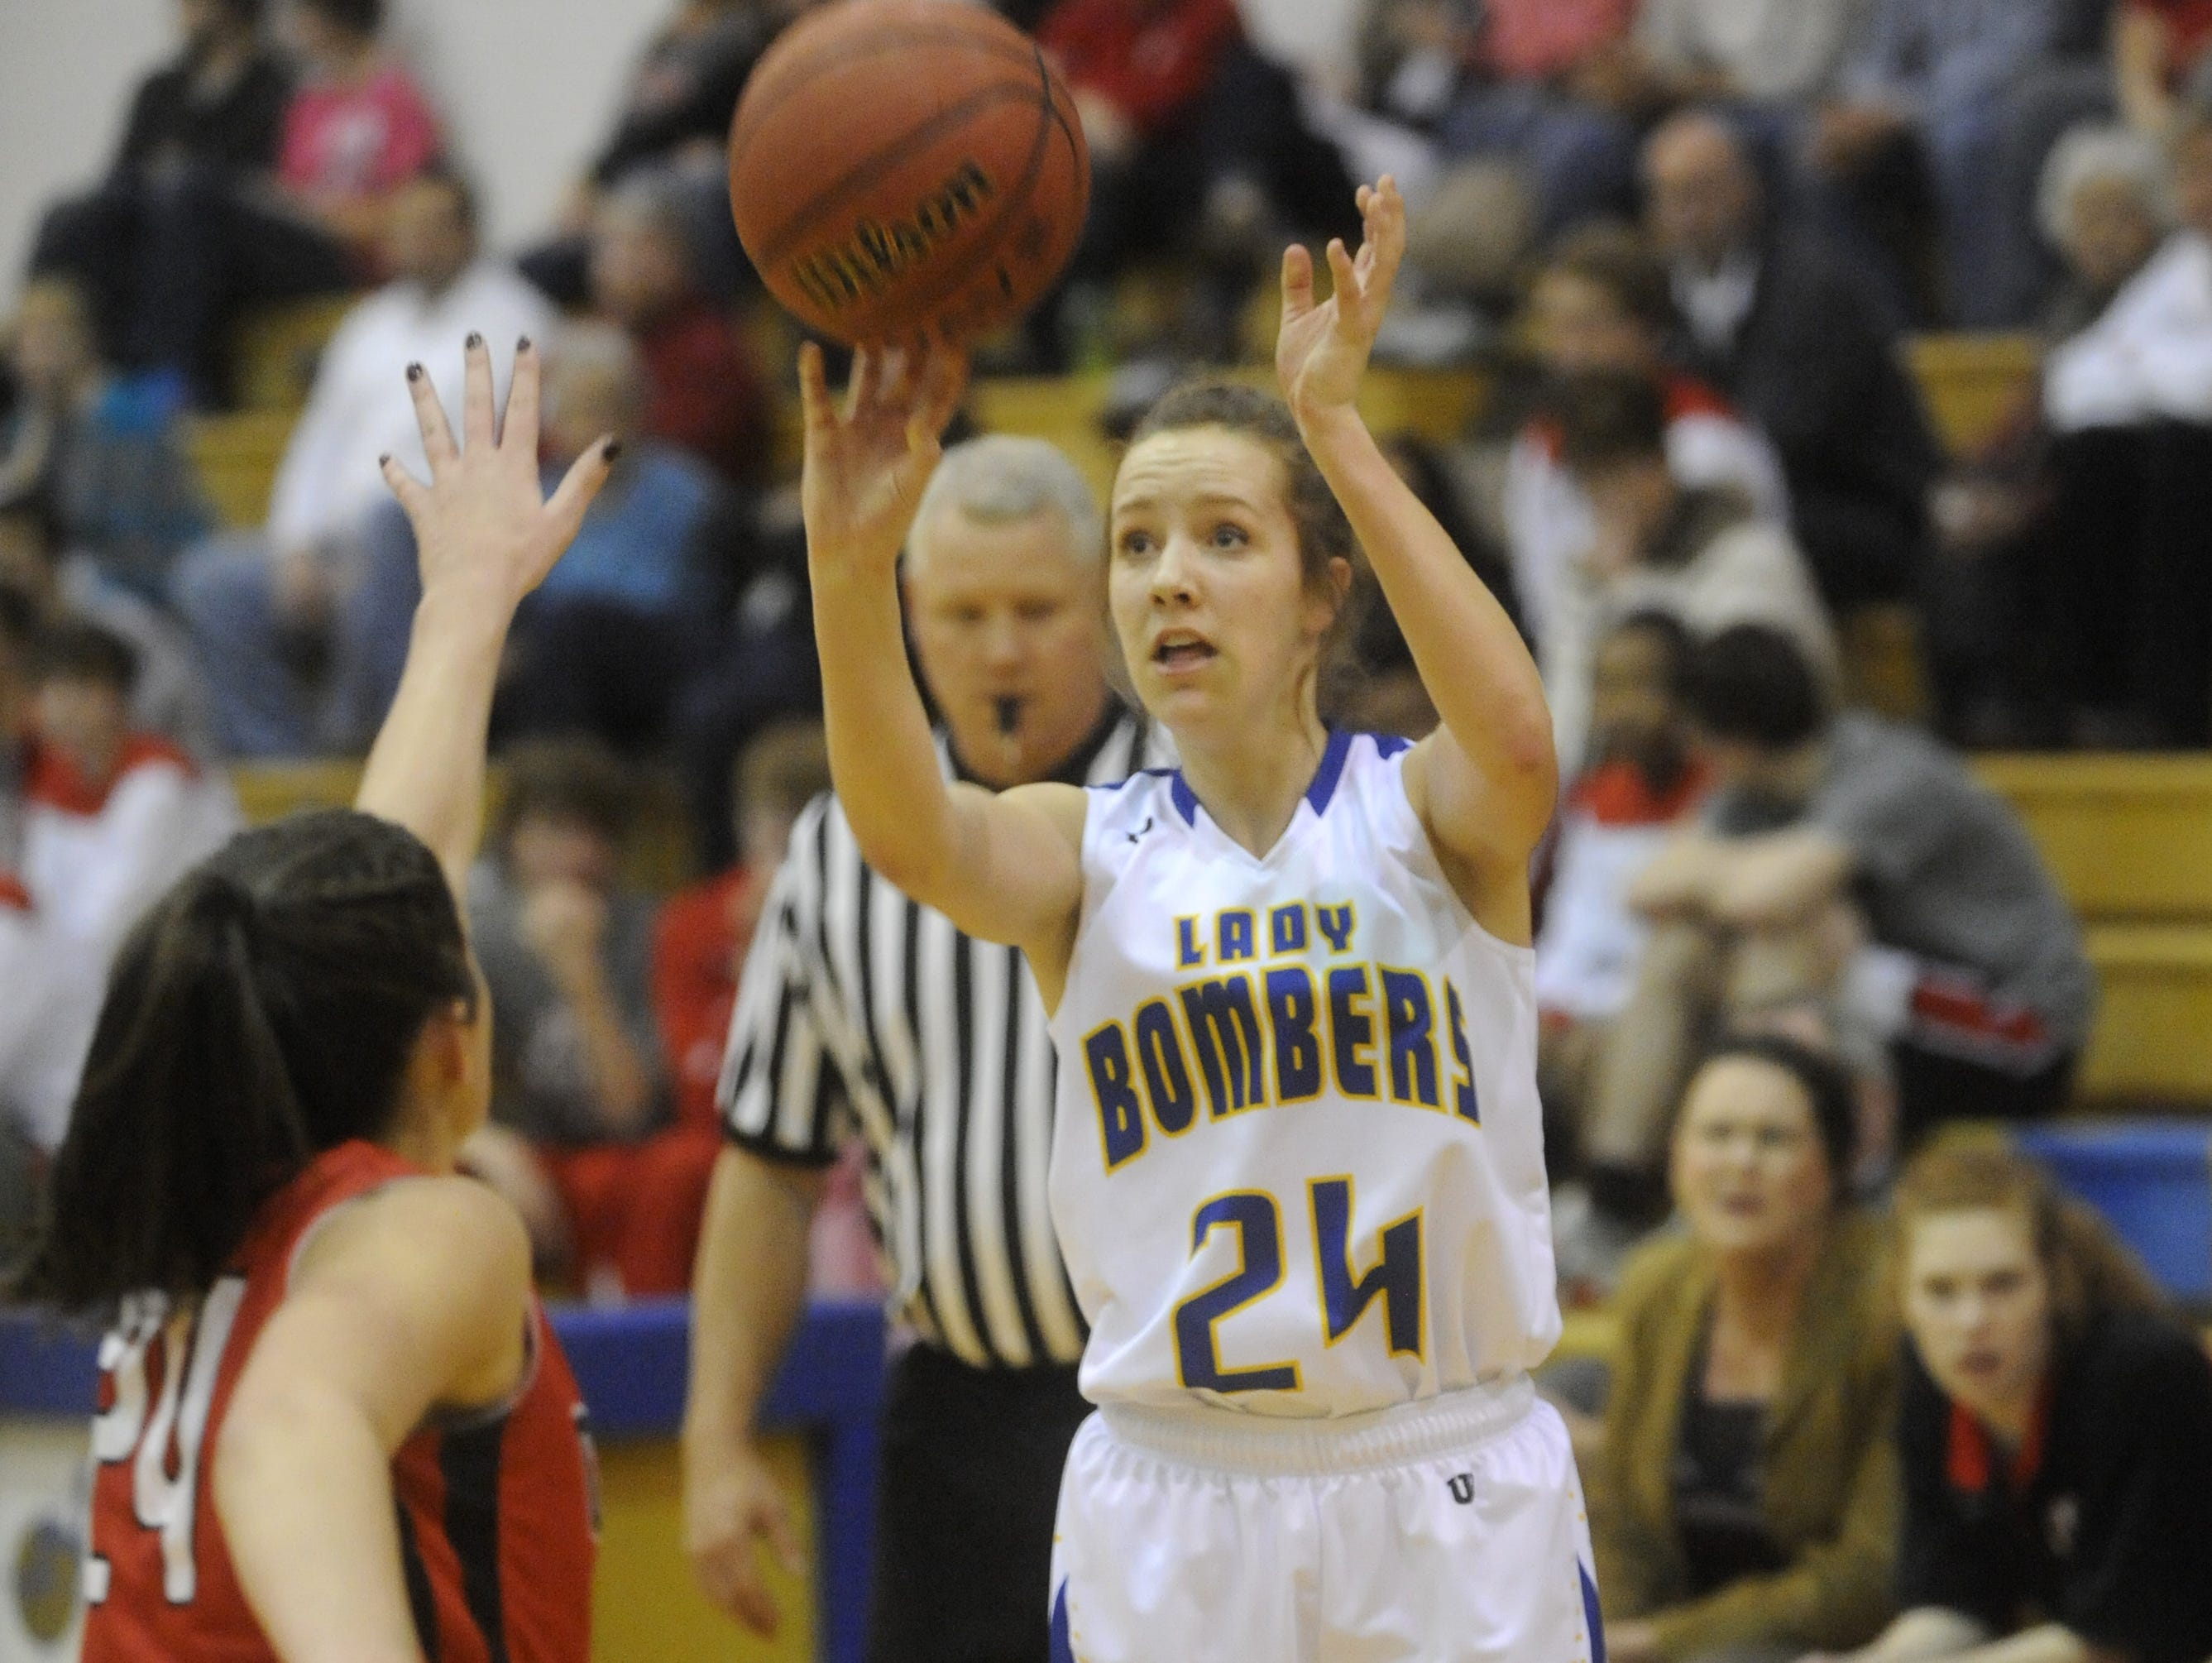 Mountain Home's Cassie Martin puts up a shot during a game last season against Cabot. Martin returns for her third season at guard for the Lady Bombers.